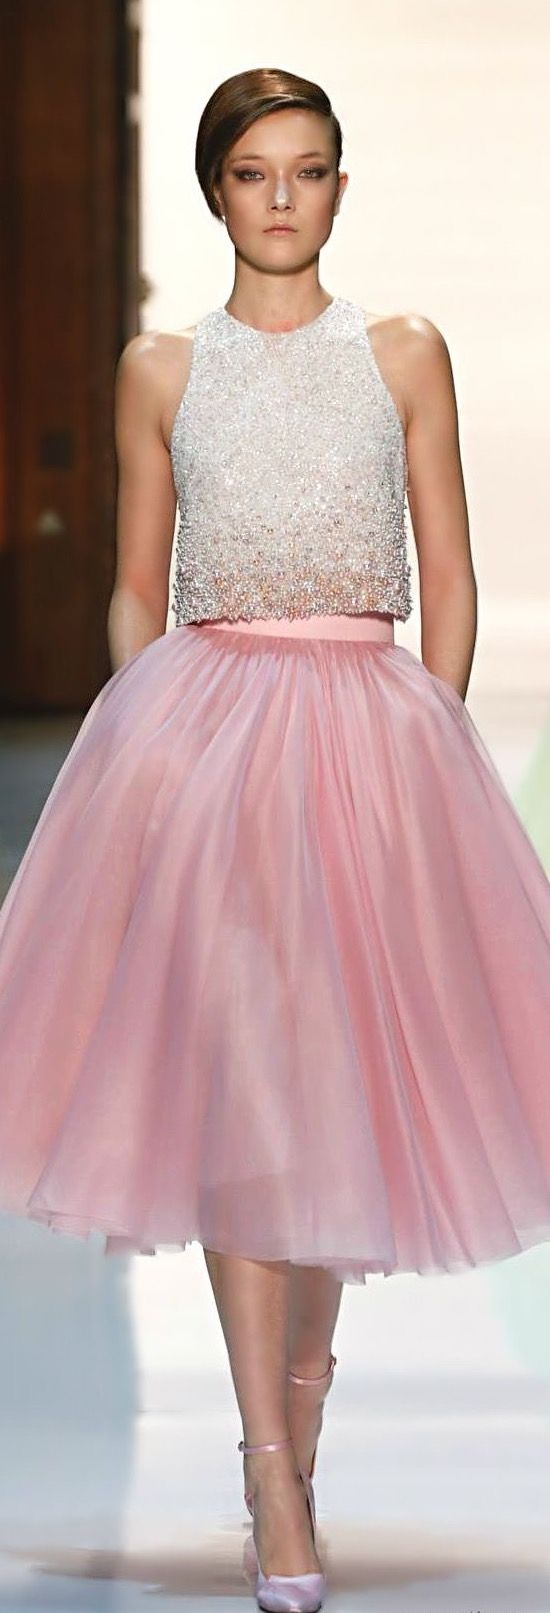 1212 best OUTFIT BODA DE DIA INVITADAS images on Pinterest | Party ...